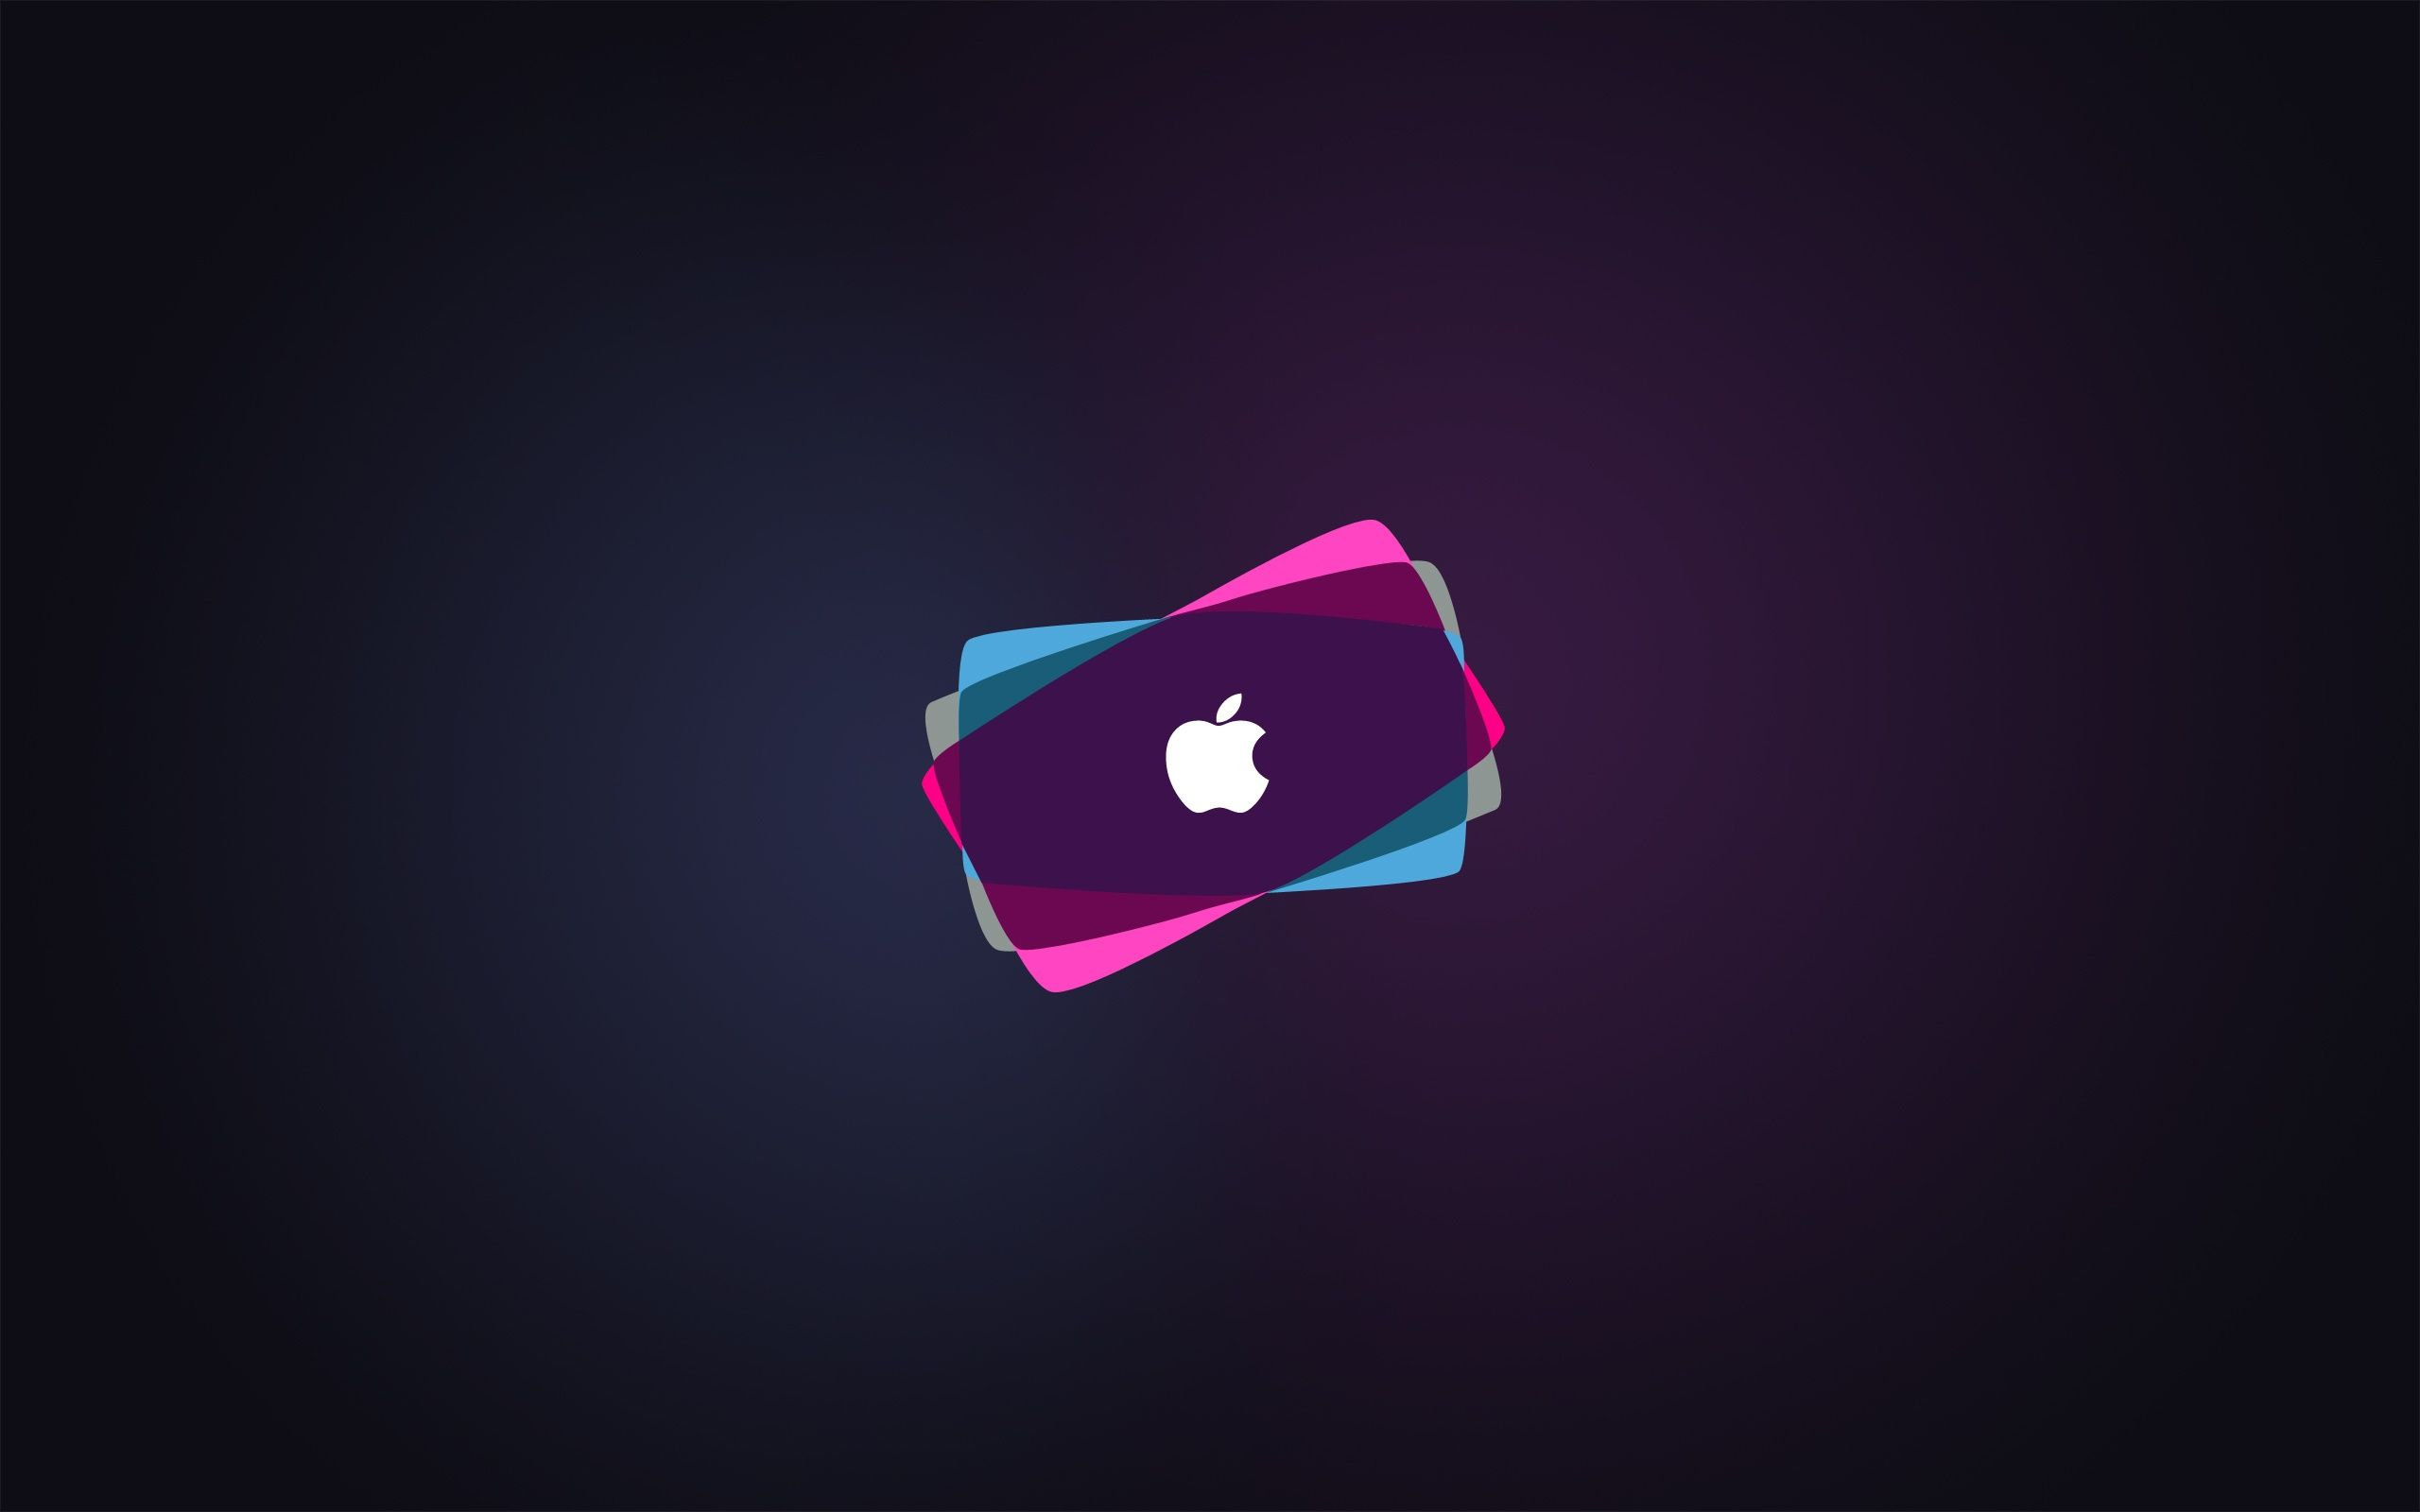 Hd wallpaper macbook - 15 Years And 139 Different Apple Homepage Designs